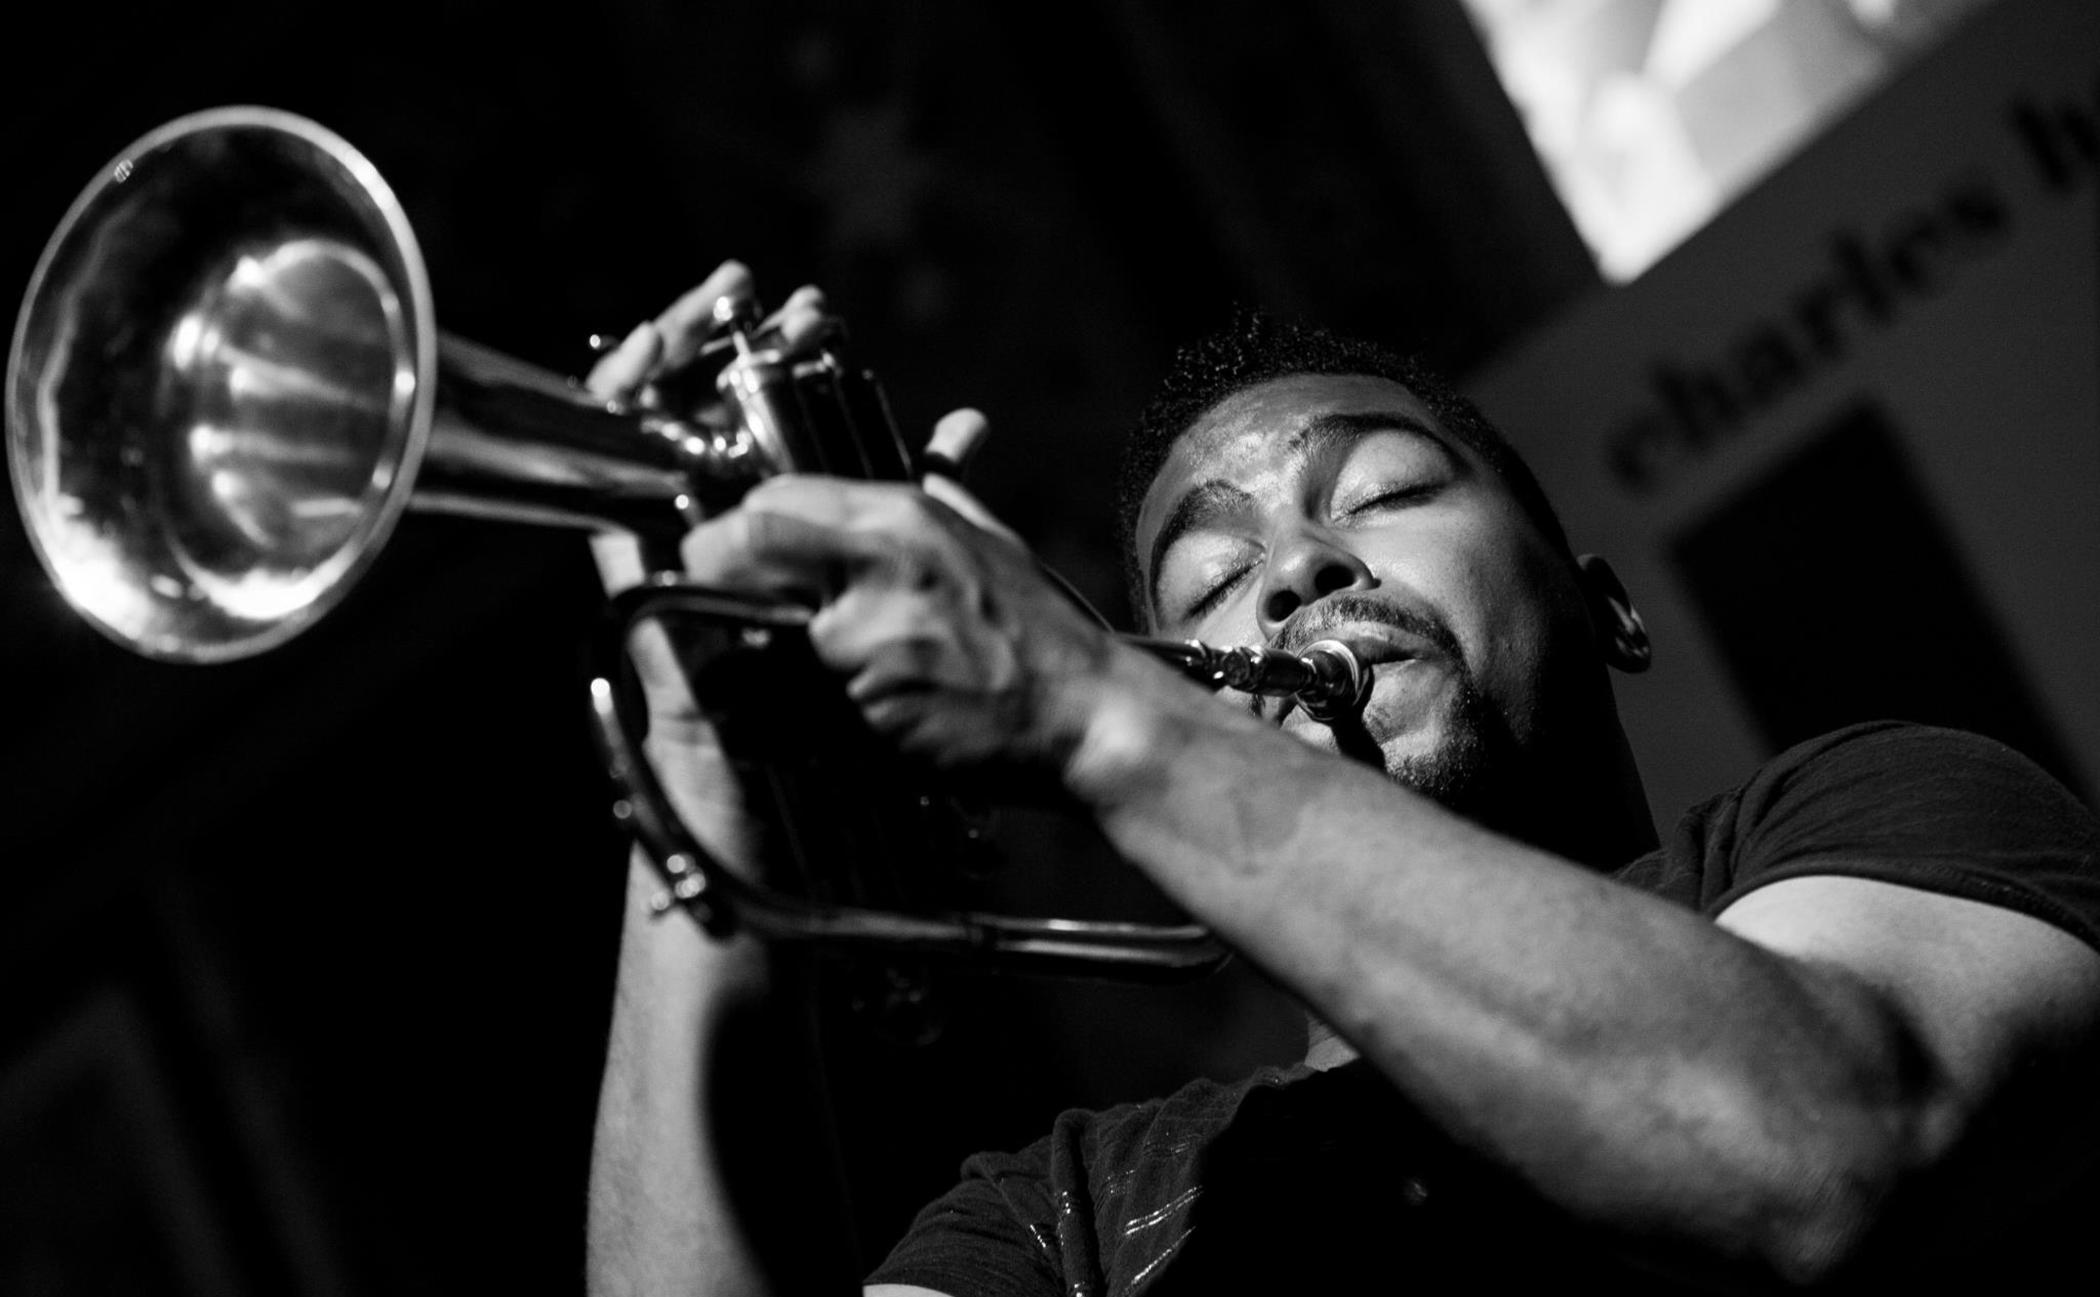 A dark-skinned person with mustache and goatee plays a trumpet with their eyes closed.